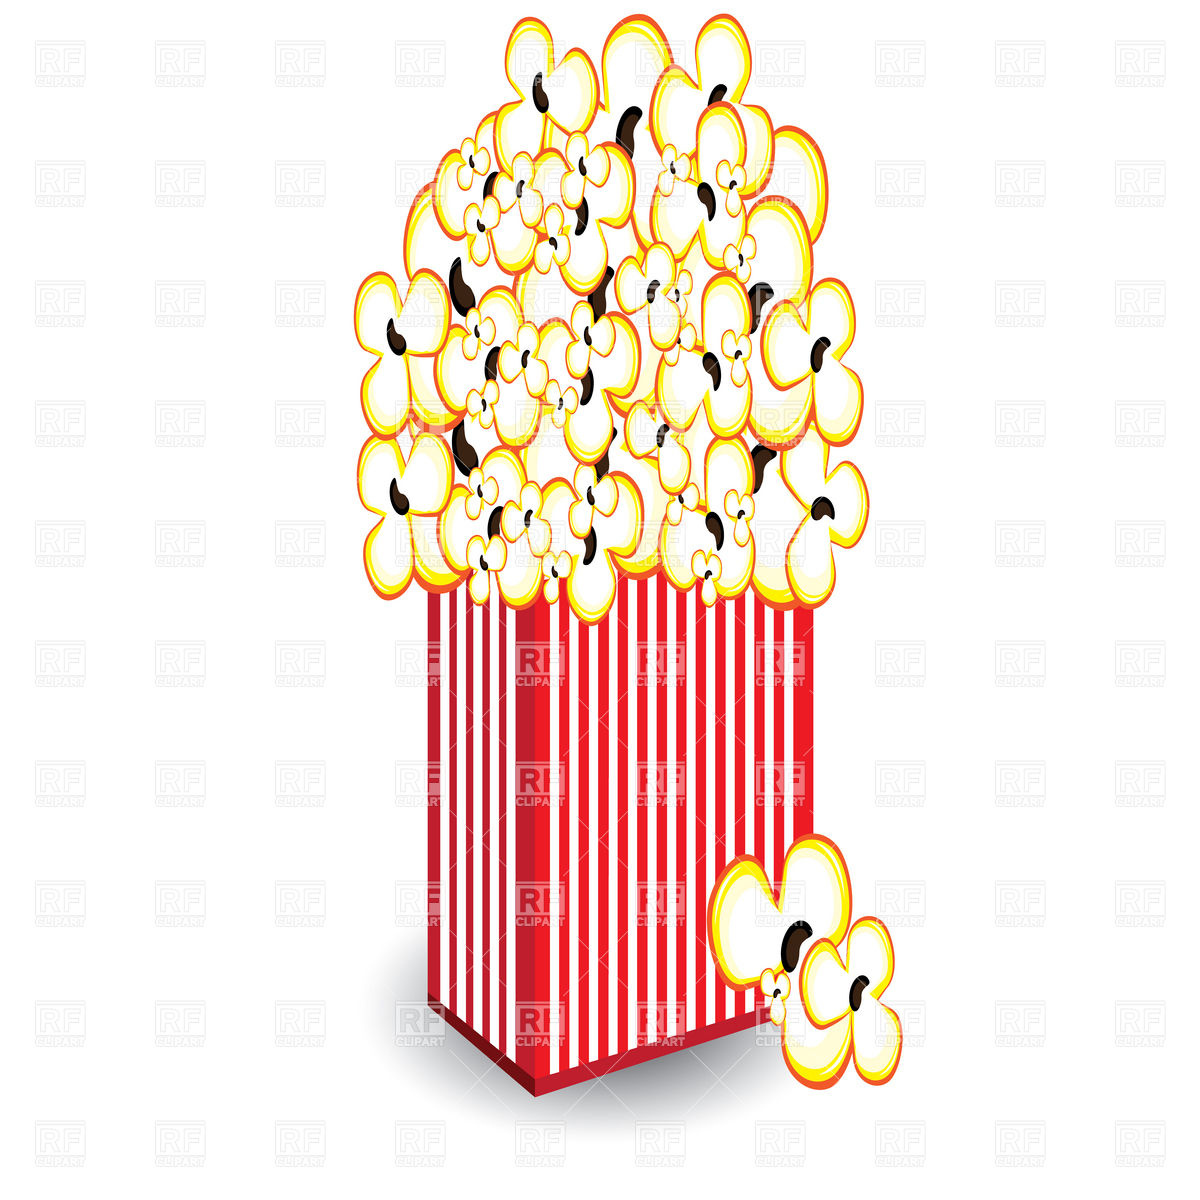 1200x1200 Pack Of Popcorn Vector Image Vector Artwork Of Food And